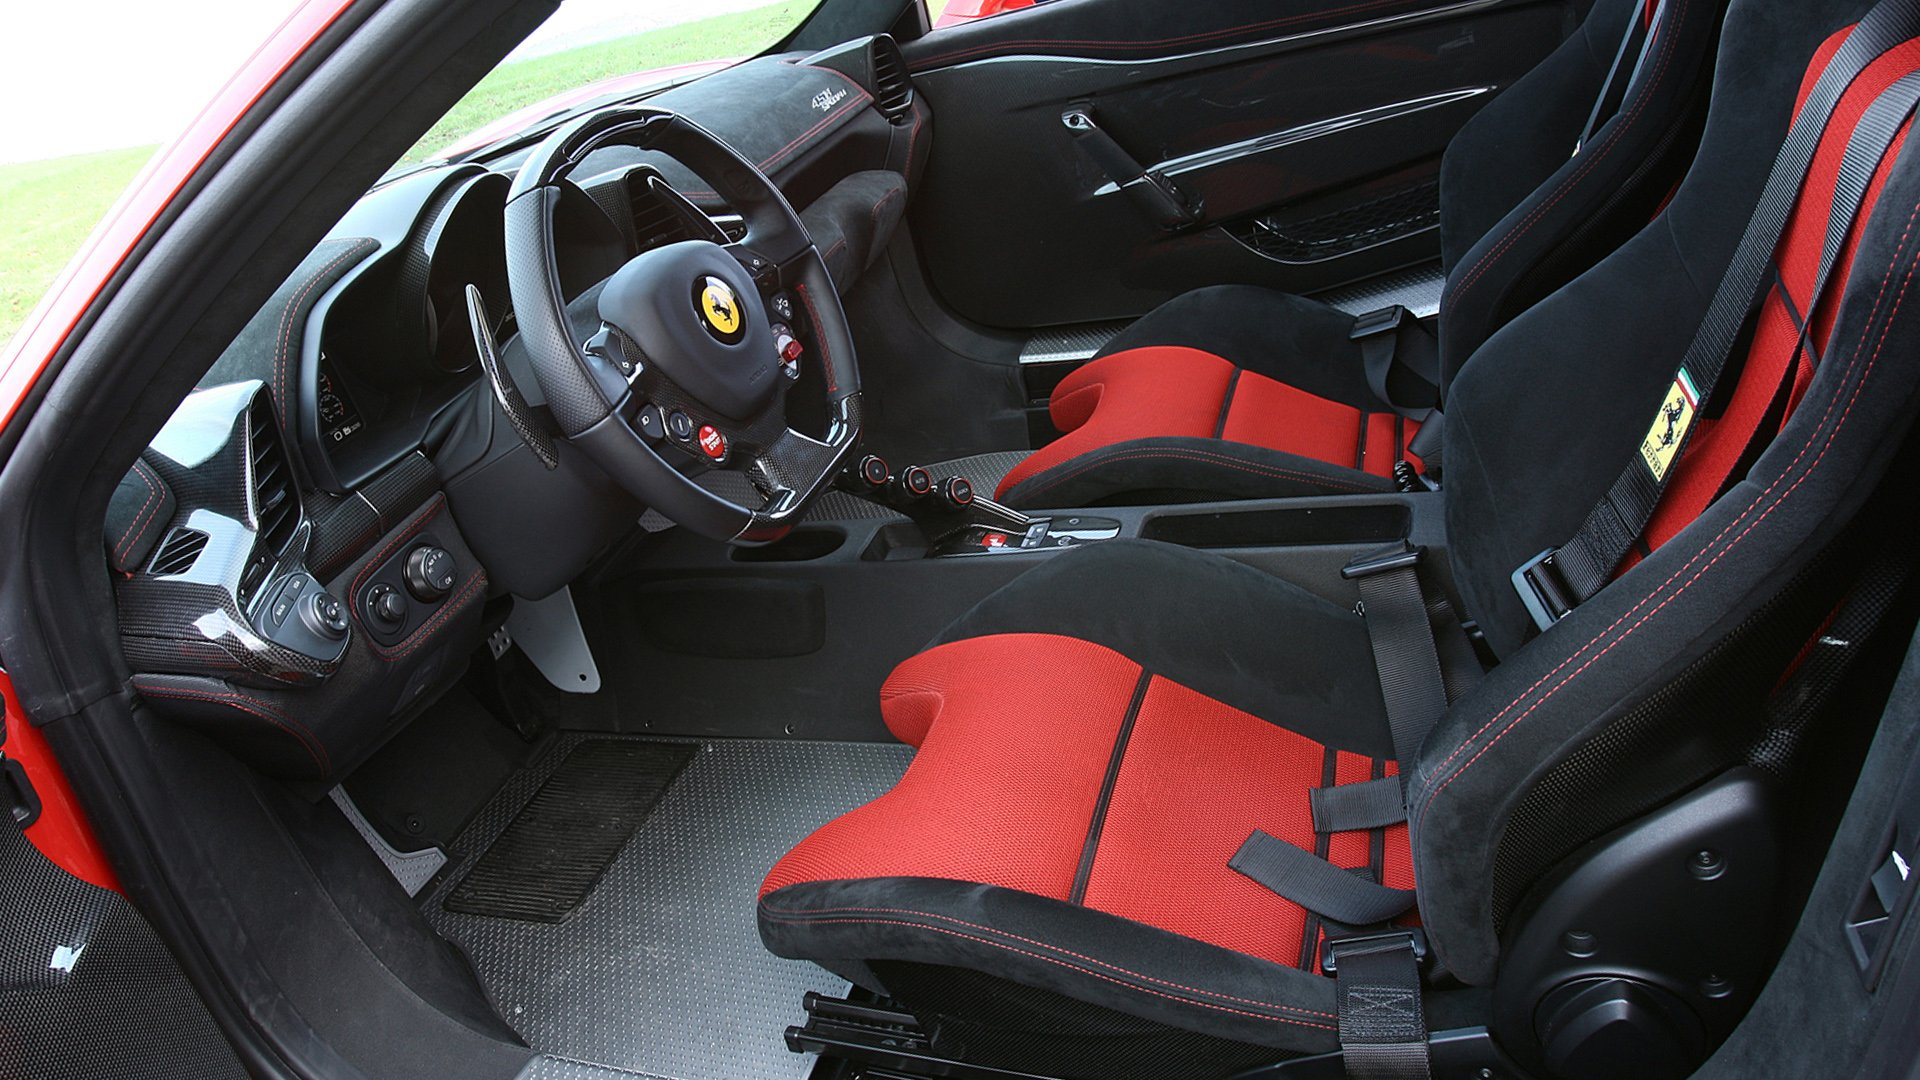 New 2019 Ferrari 458 Speciale Interior Design